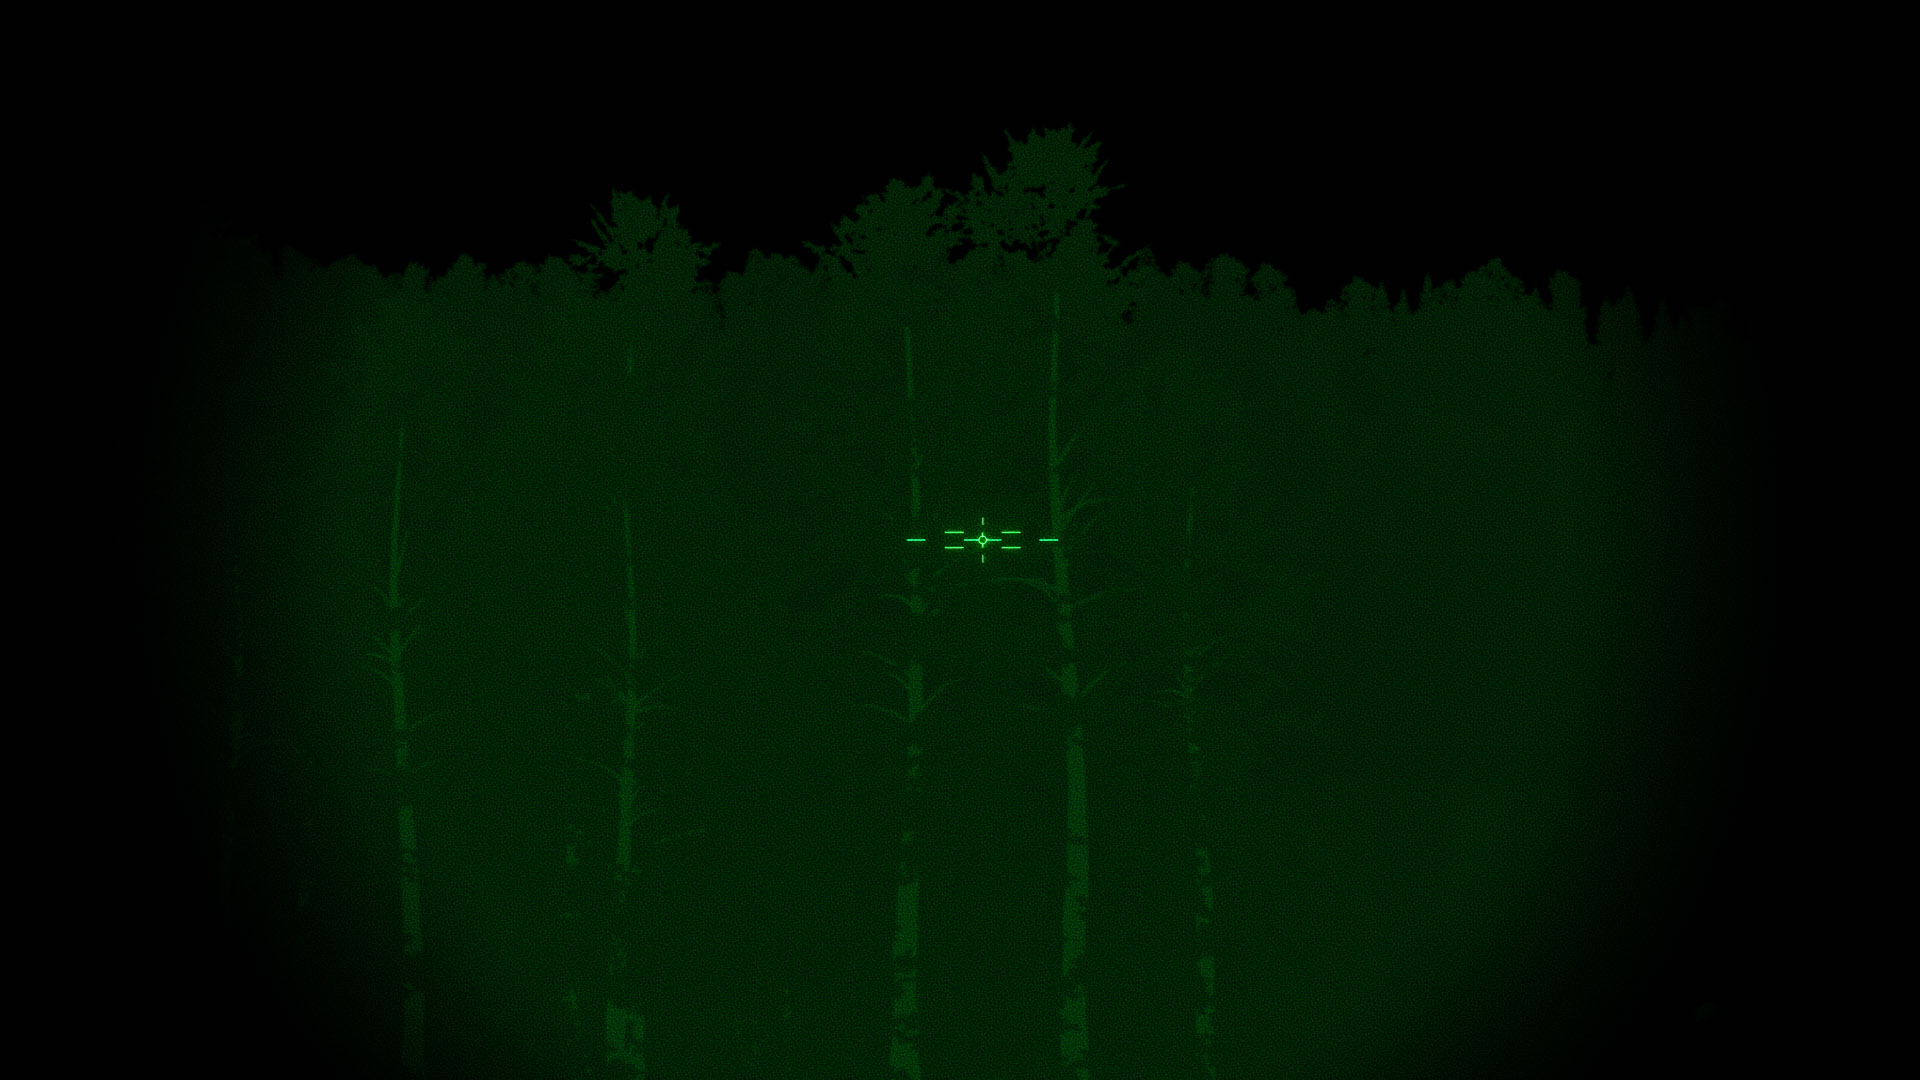 M60A3 TTS viewing a forest